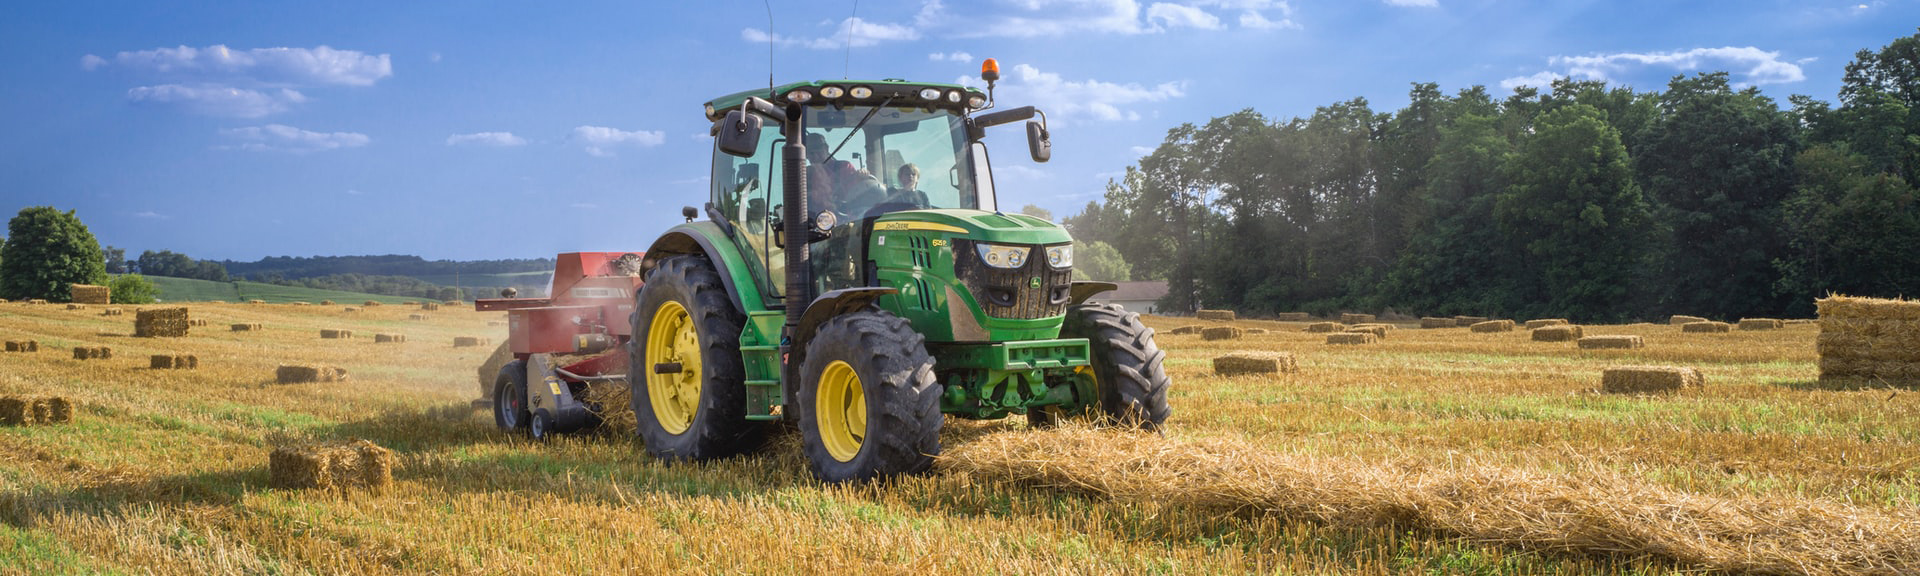 A tractor working on bales of hay.